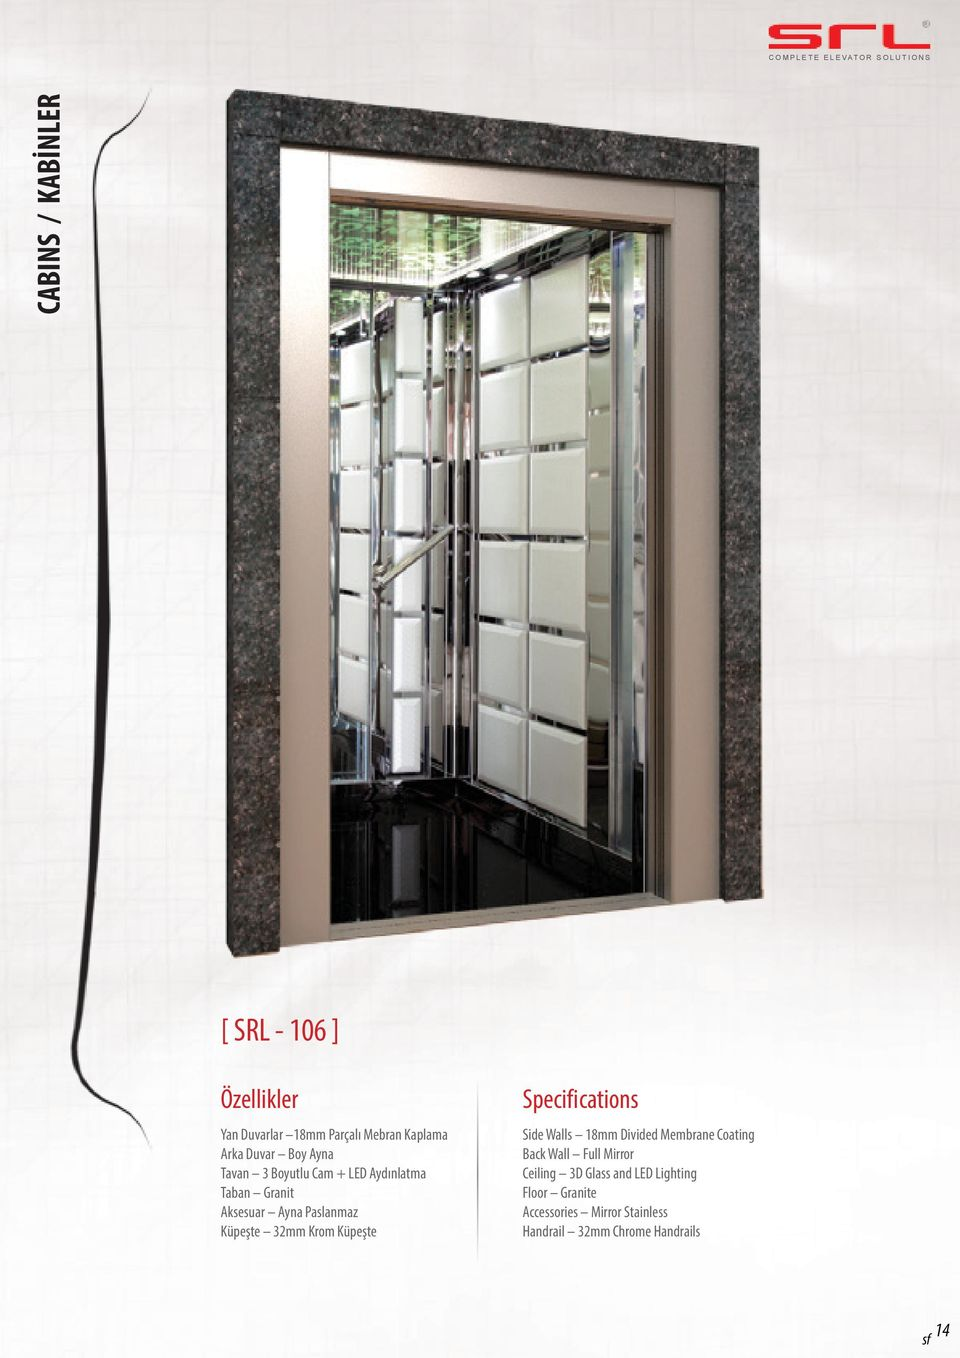 Küpeşte Specifications Side Walls 18mm Divided Membrane Coating Back Wall Full Mirror Ceiling 3D